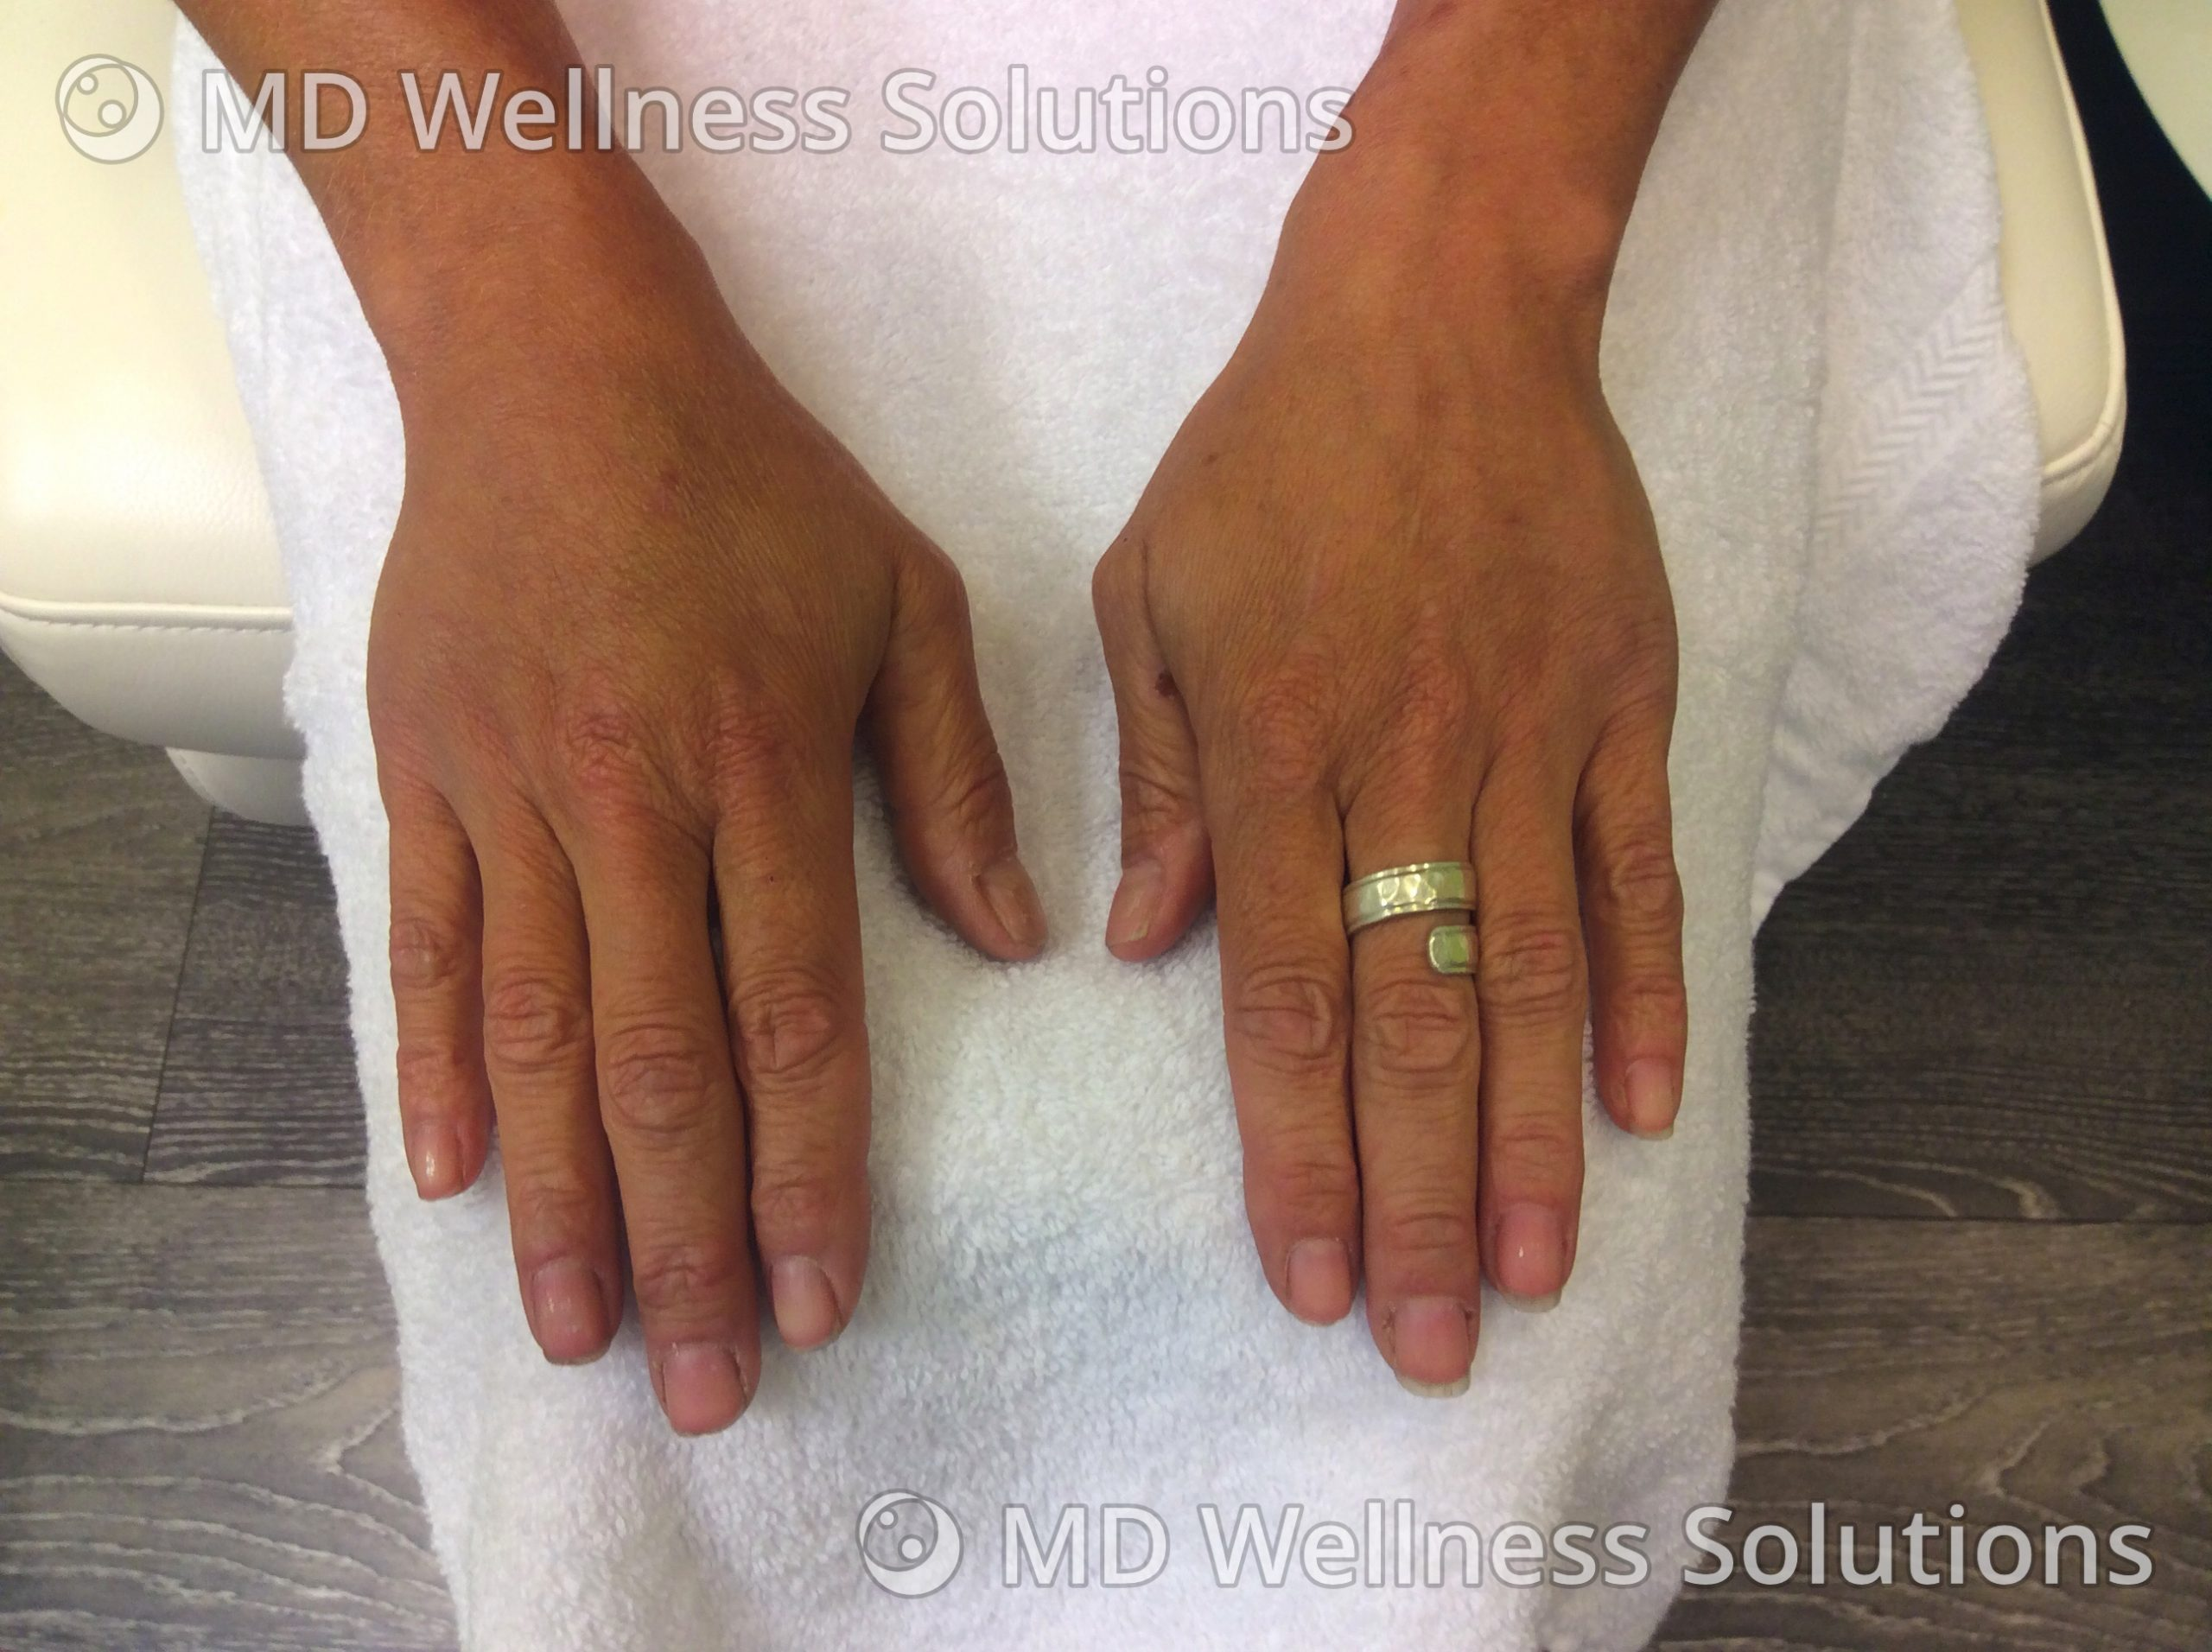 45-54 year old woman after hand filler treatment